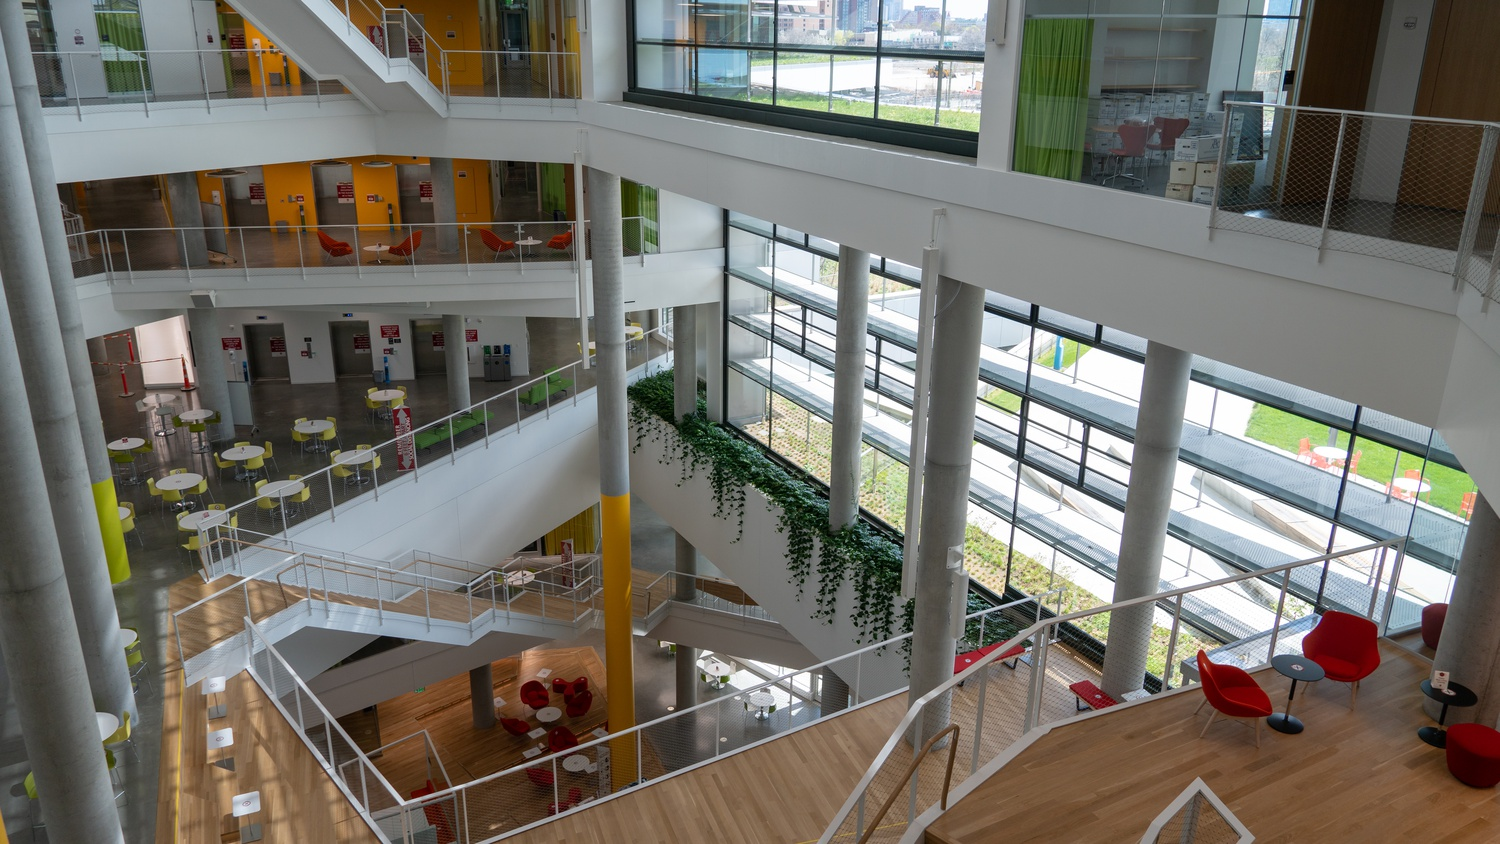 The larger atrium runs six stories up and two stories below ground. It features retractable projector screens for events and large windows which let in natural light.